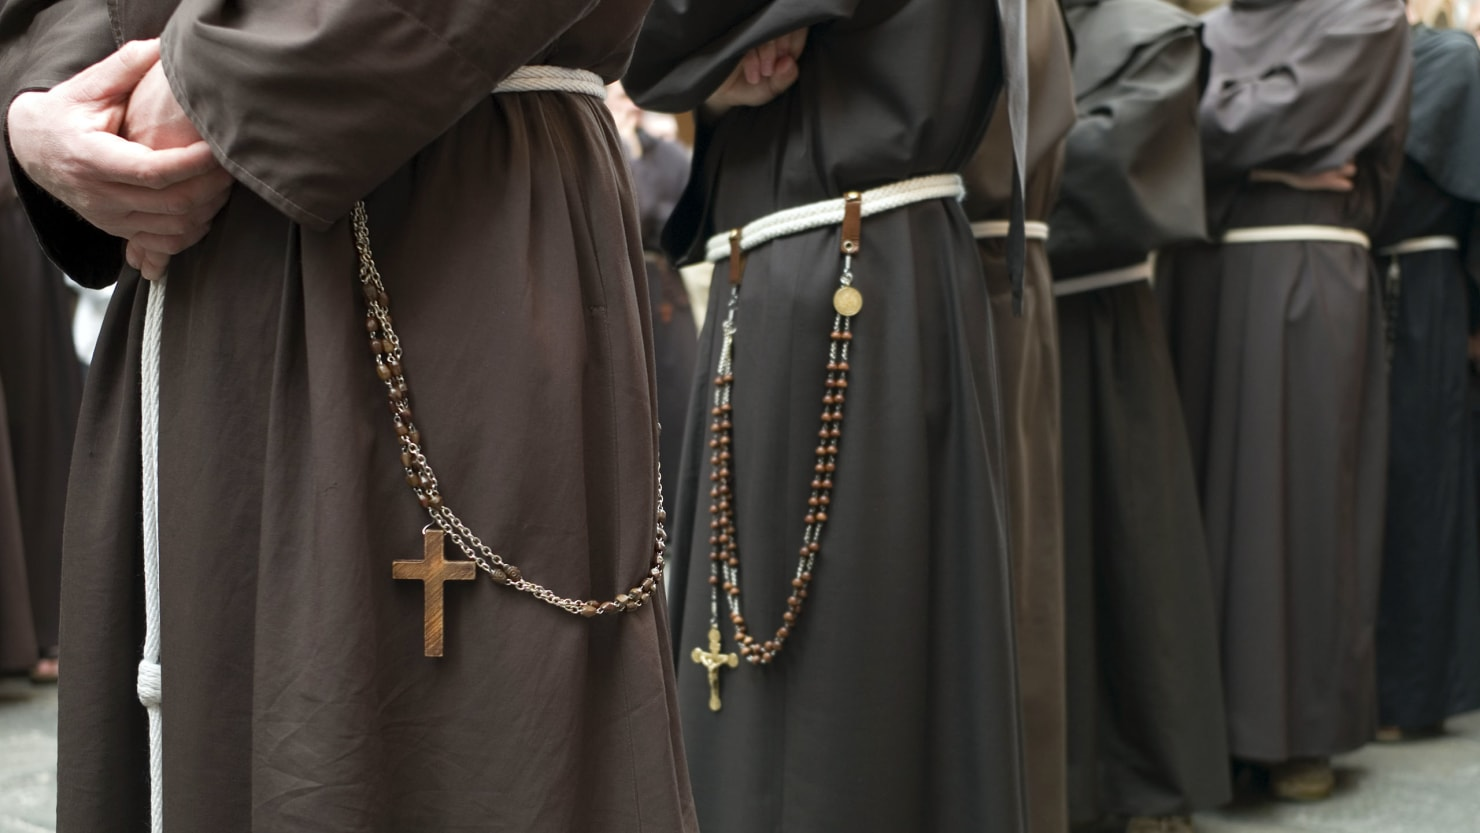 30 Victims Accused 13 Monks At New Jersey Abbey Of Sexual Abuse